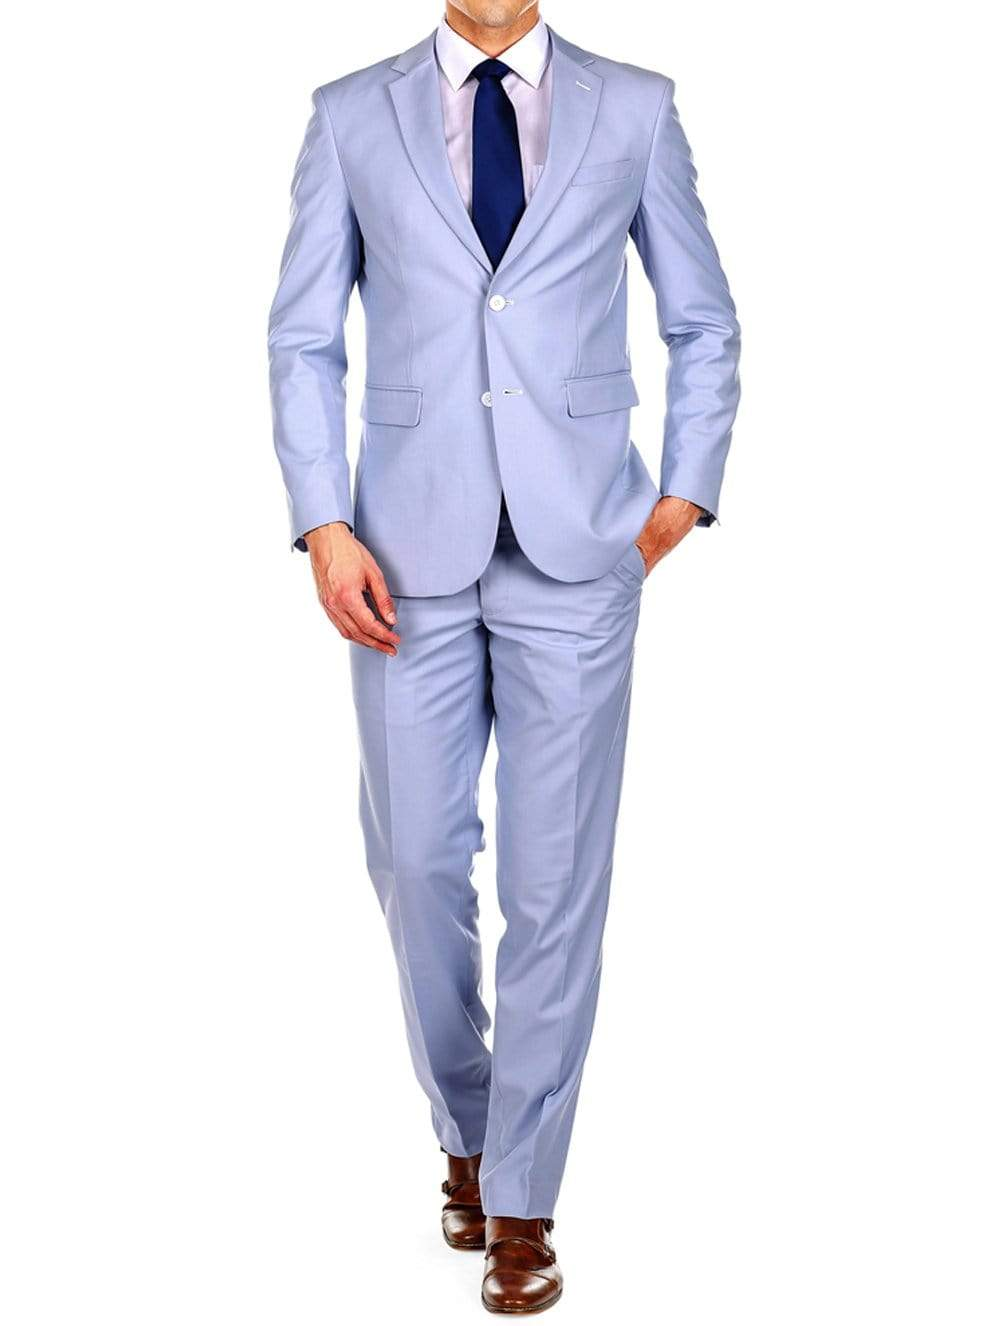 DAILY HAUTE Men's Suits LIGHT BLUE / 36Rx30W Braveman Men's Slim Fit 2PC Suits